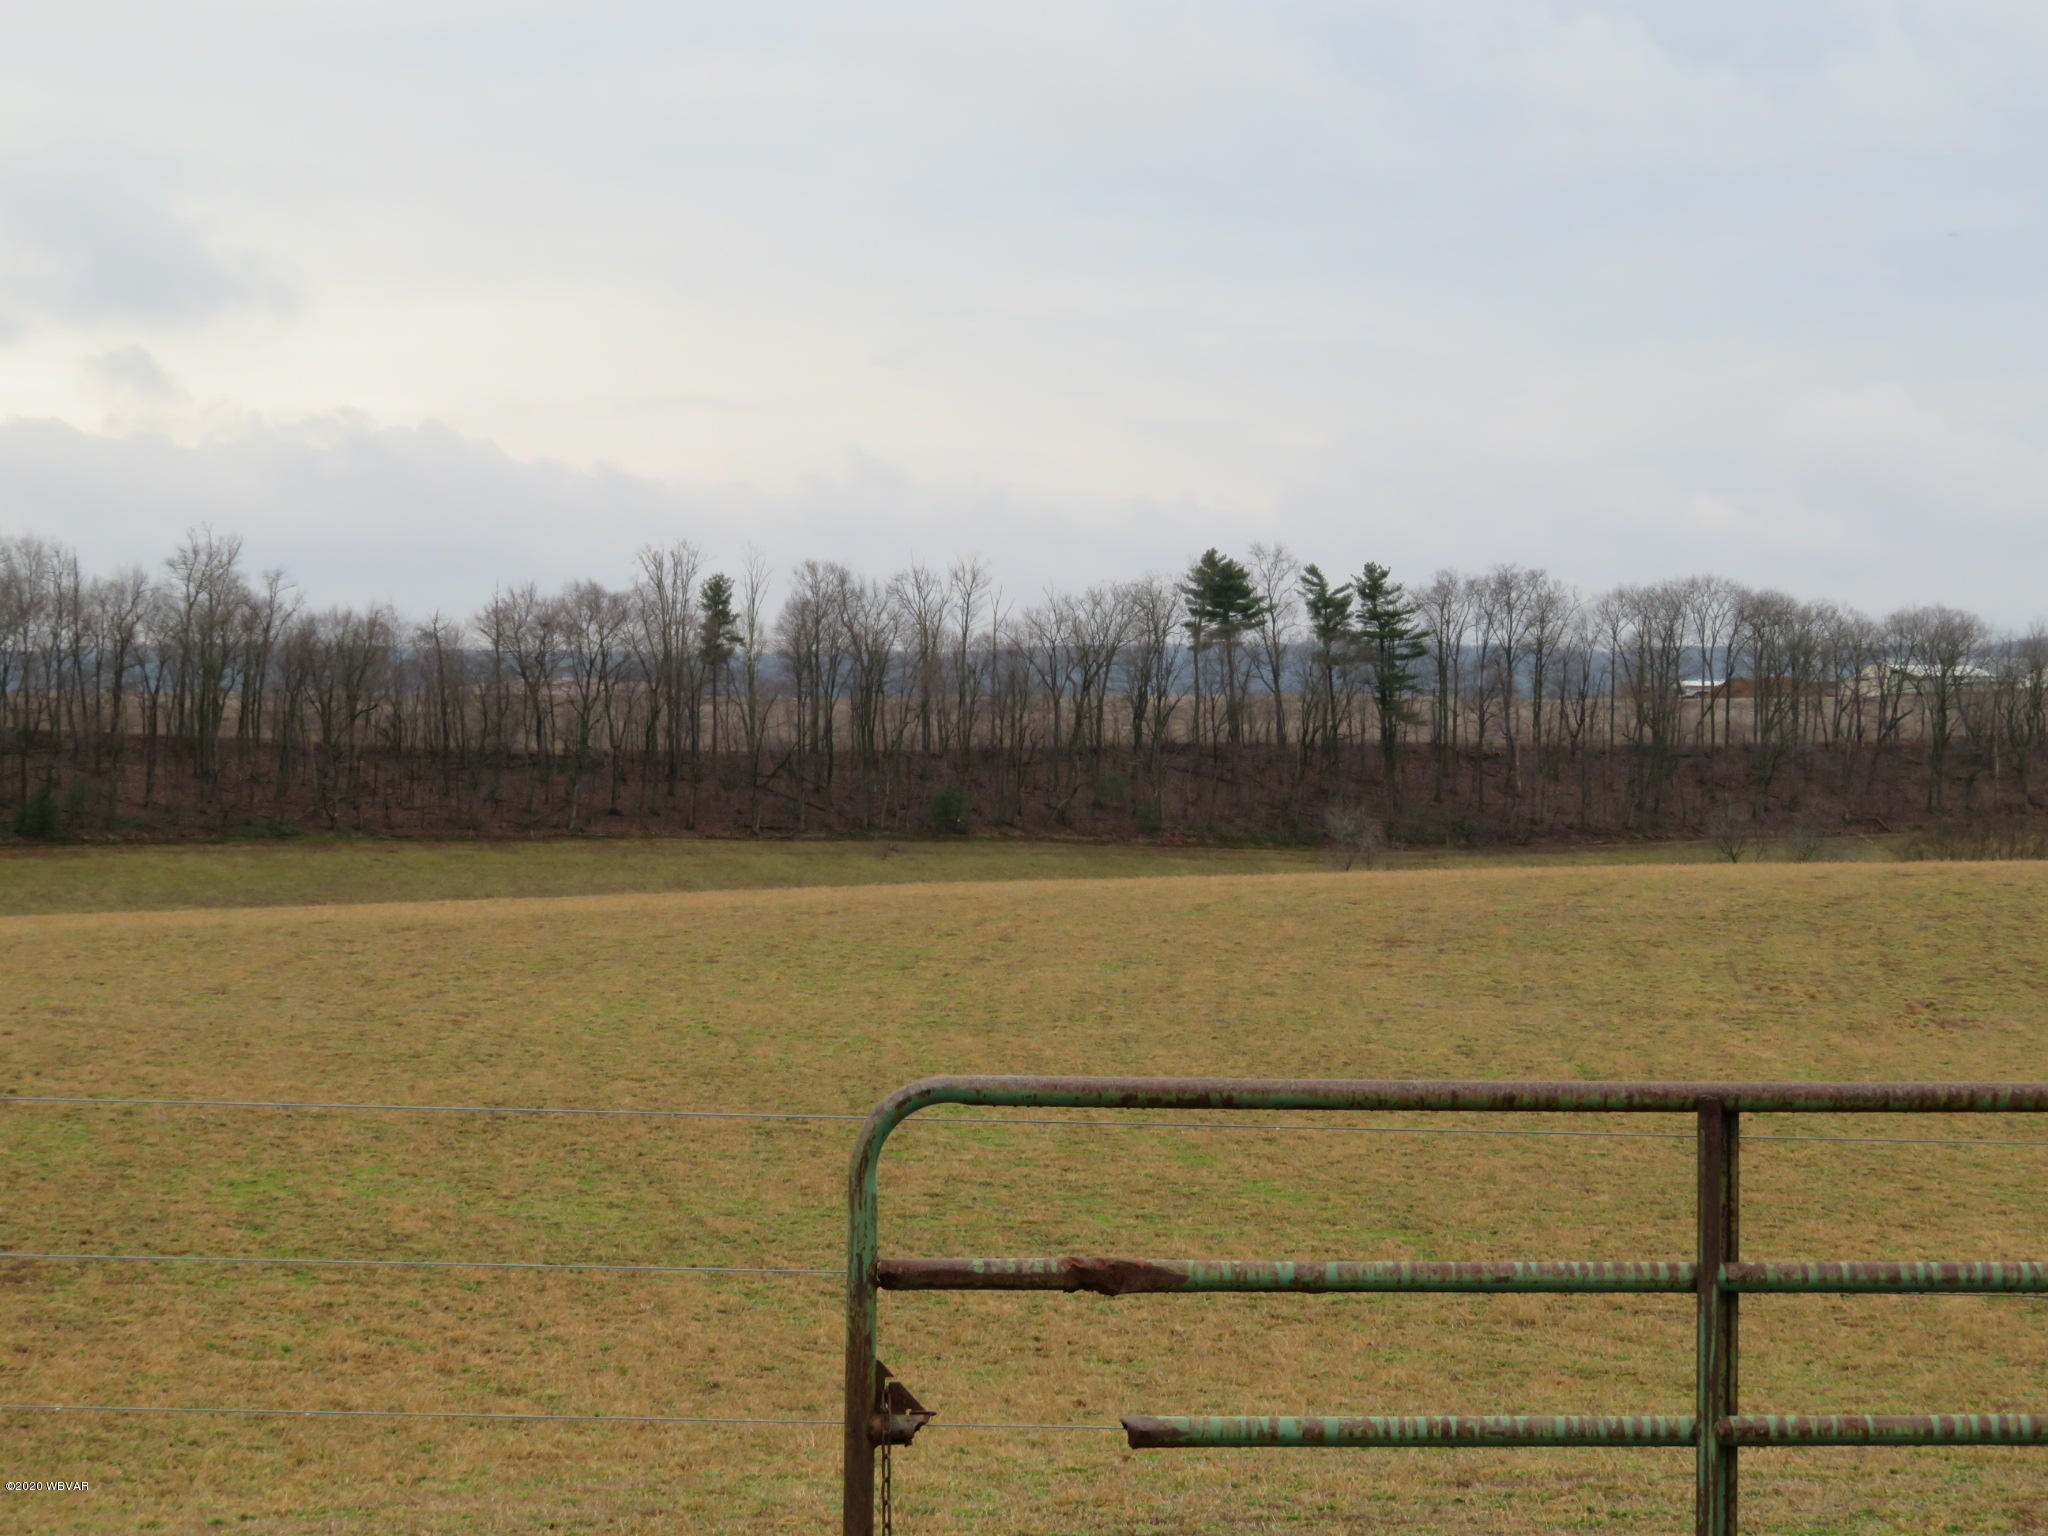 00 KAUFFMAN ROAD, Dornsife, PA 17823, ,Land,For sale,KAUFFMAN,WB-89613